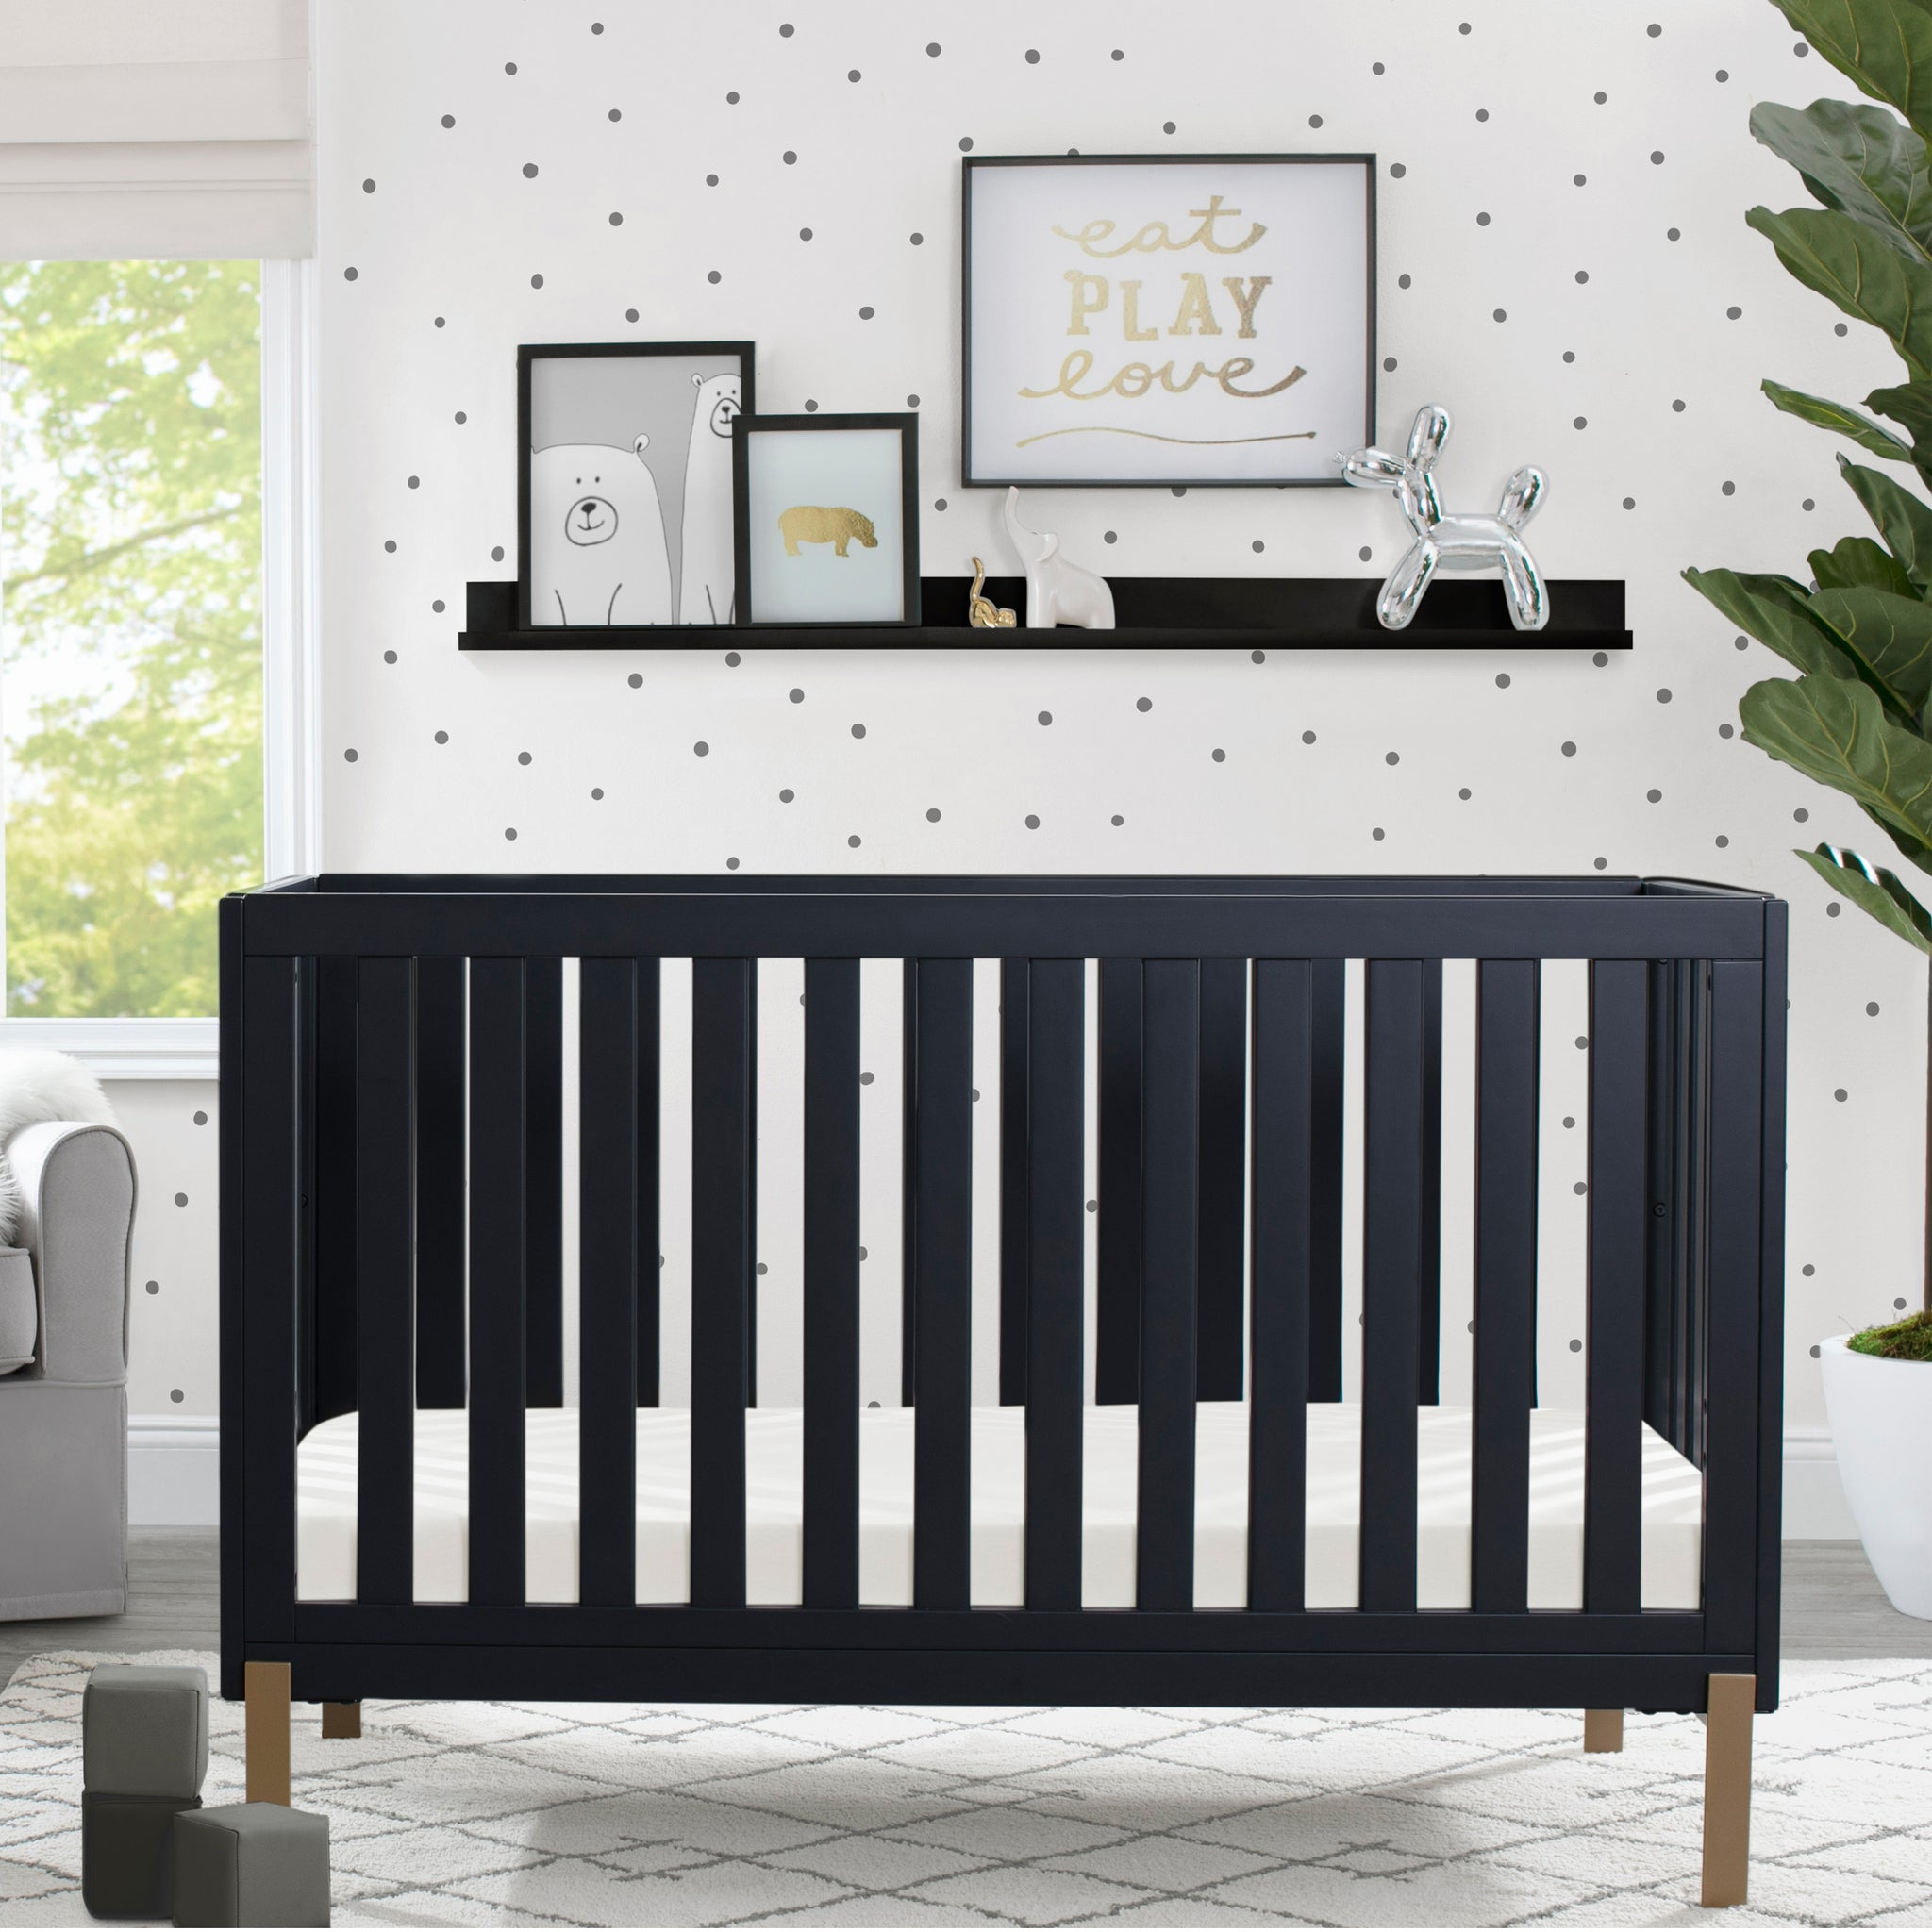 Hendrix 4-in-1 Convertible Crib